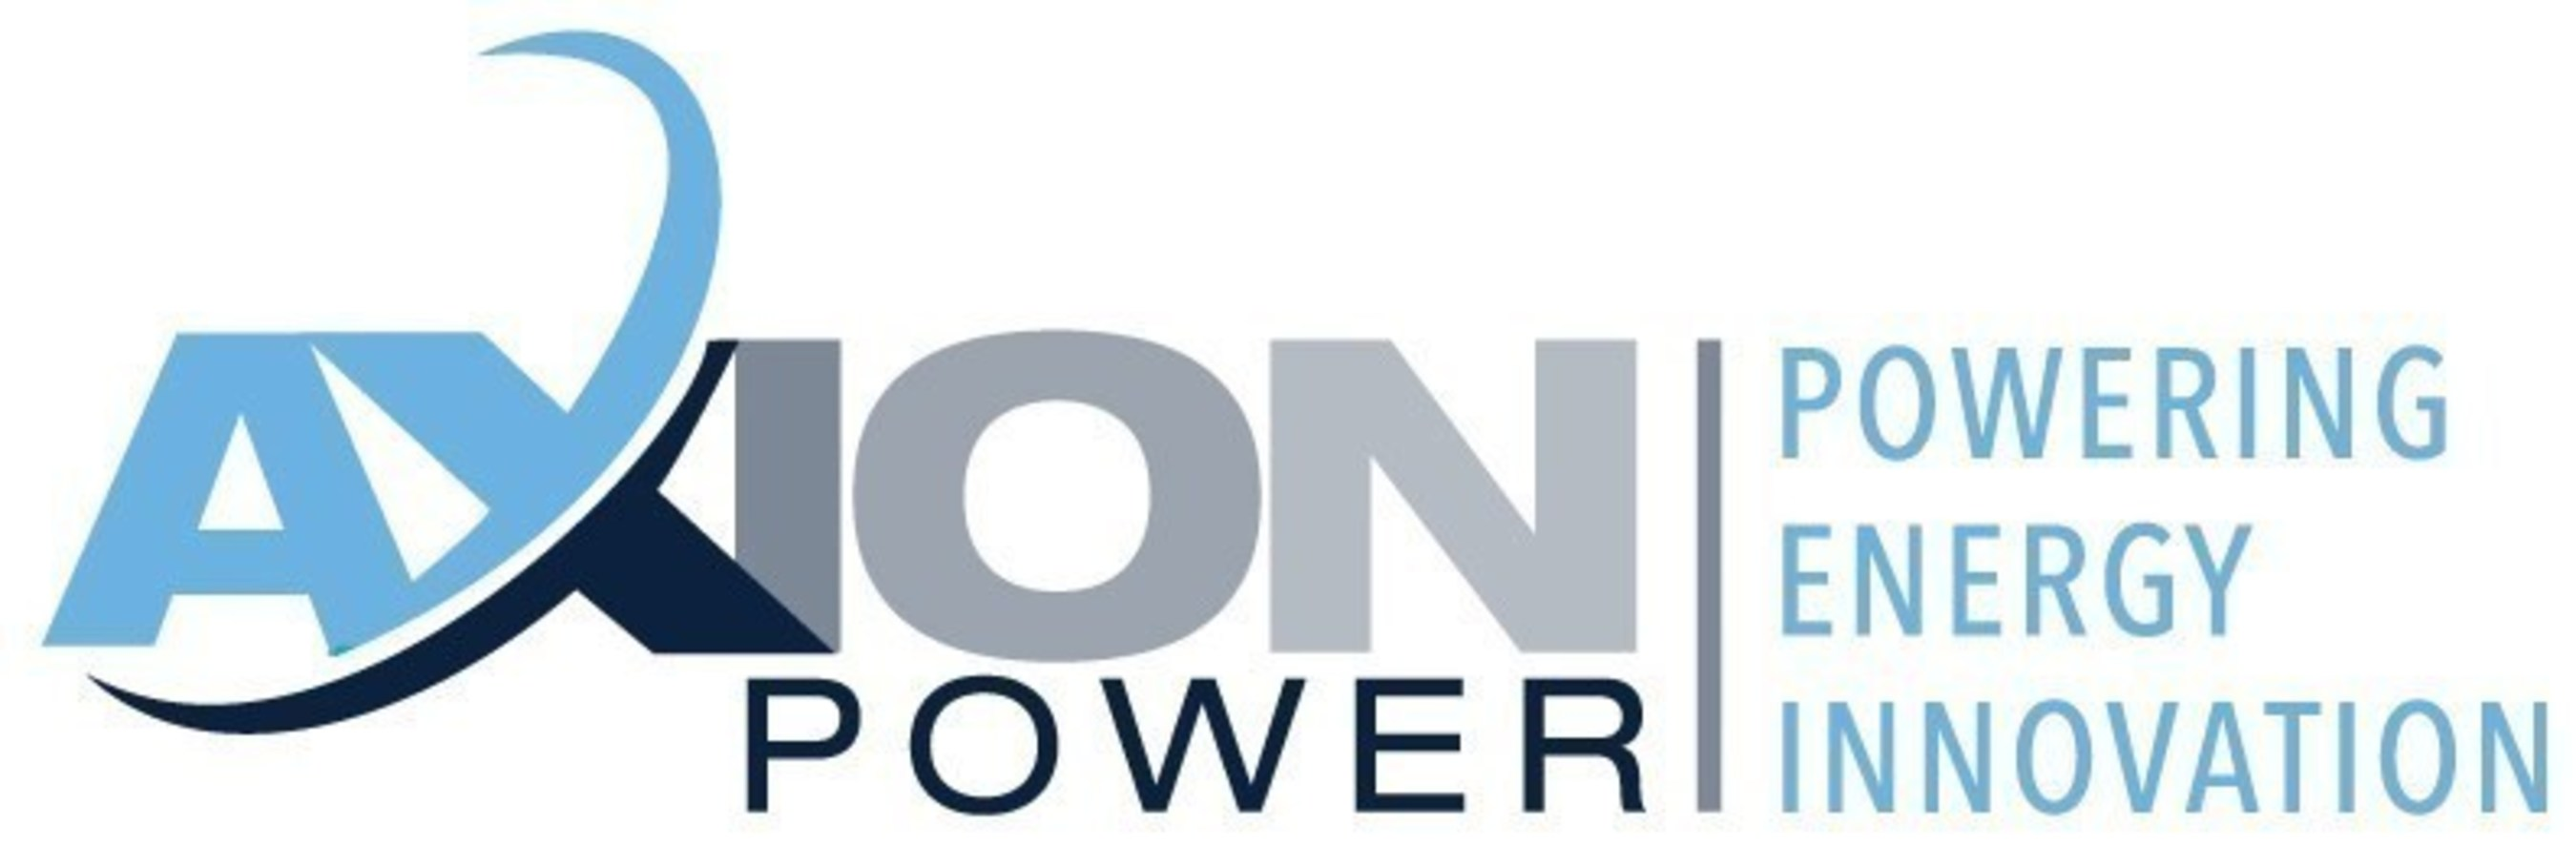 Executives from China Visit Axion Power, Continue Negotiations around Licensing PbC' Technology